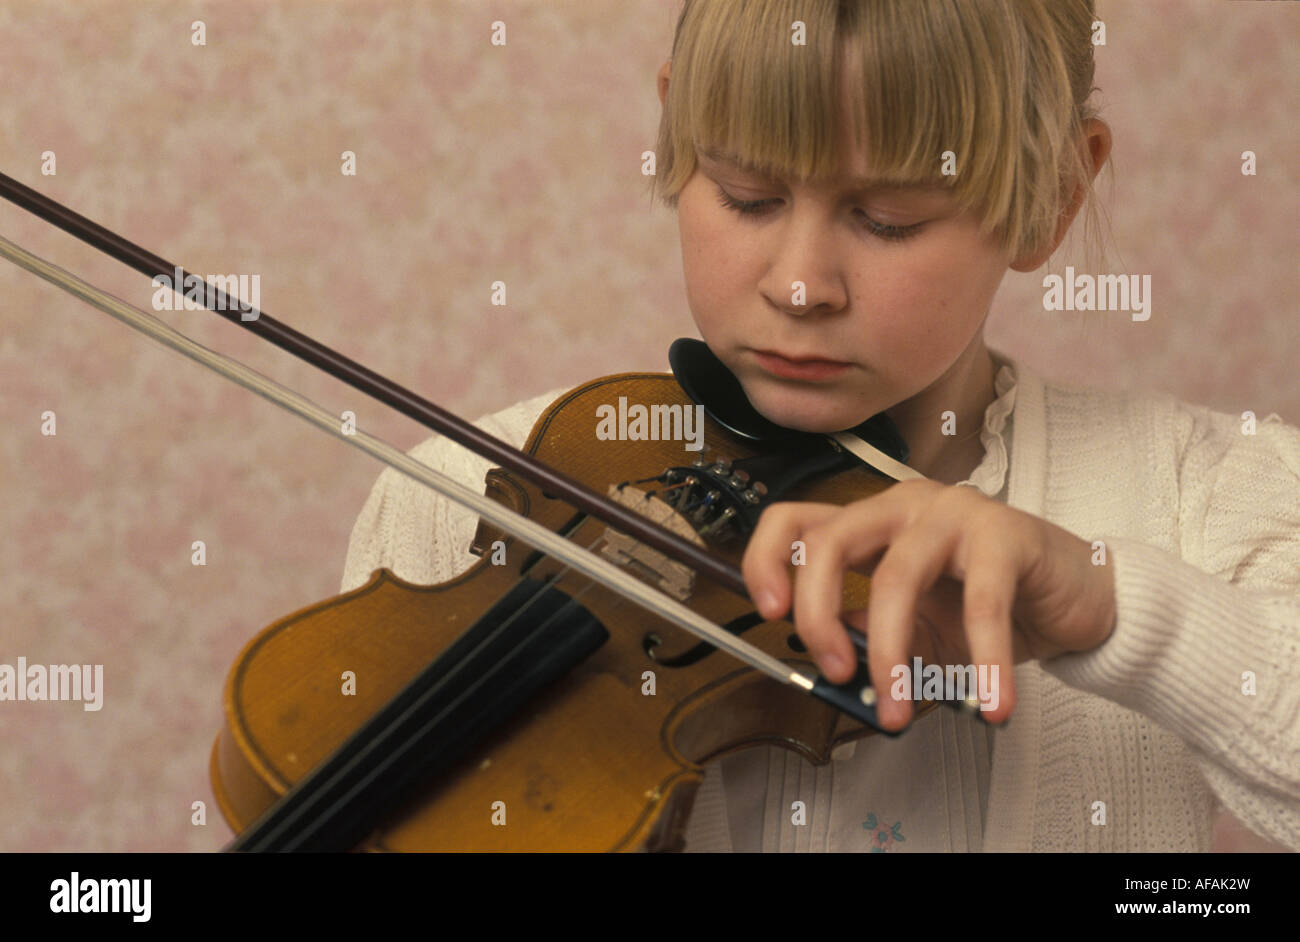 girl playing violin with her left hand - Stock Image